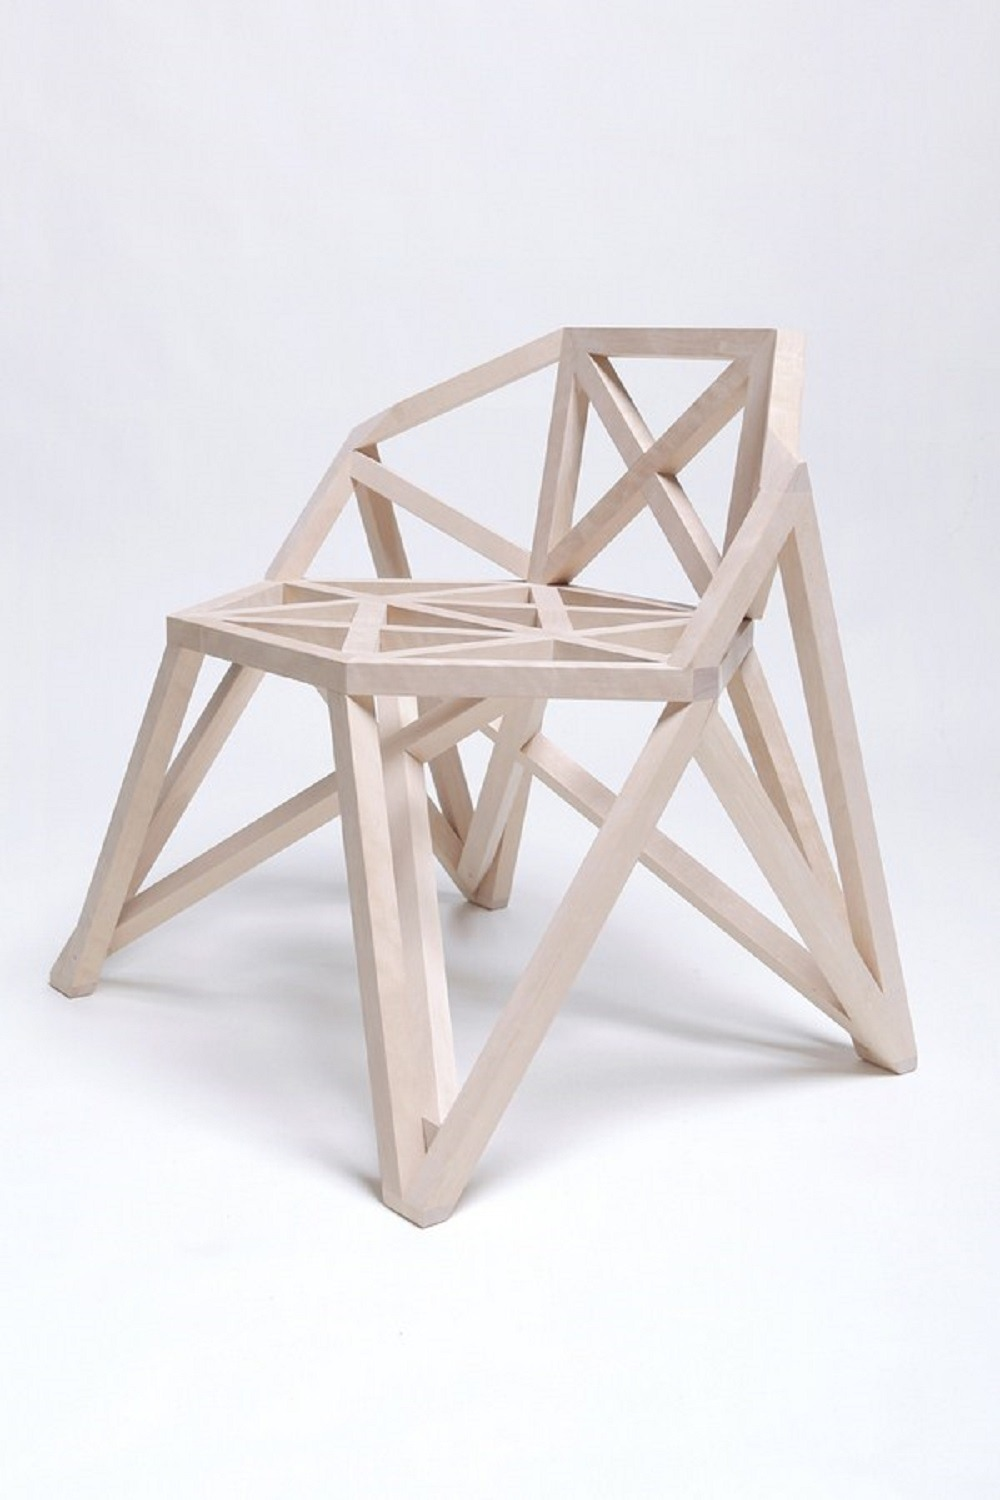 Spanish Product design: Bridge chair by Arthur Analts & Strelis